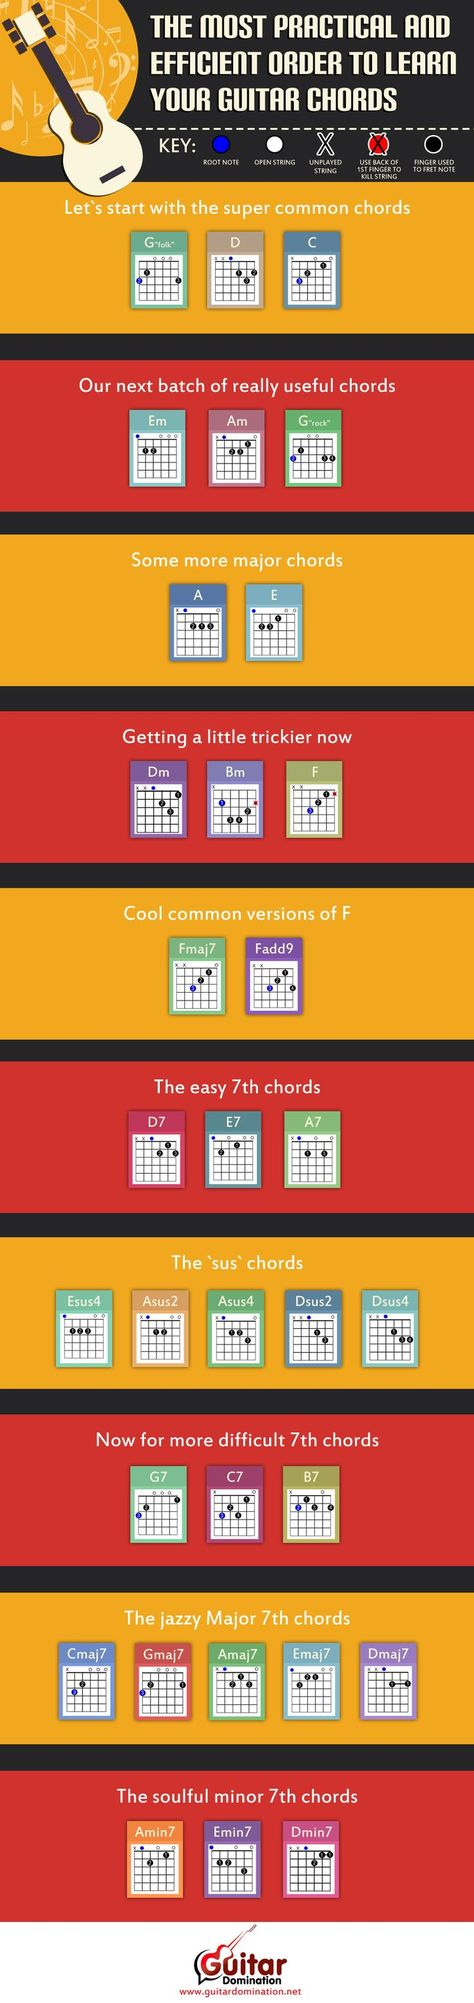 107 best chords images on pinterest music books and drawings hexwebz Images